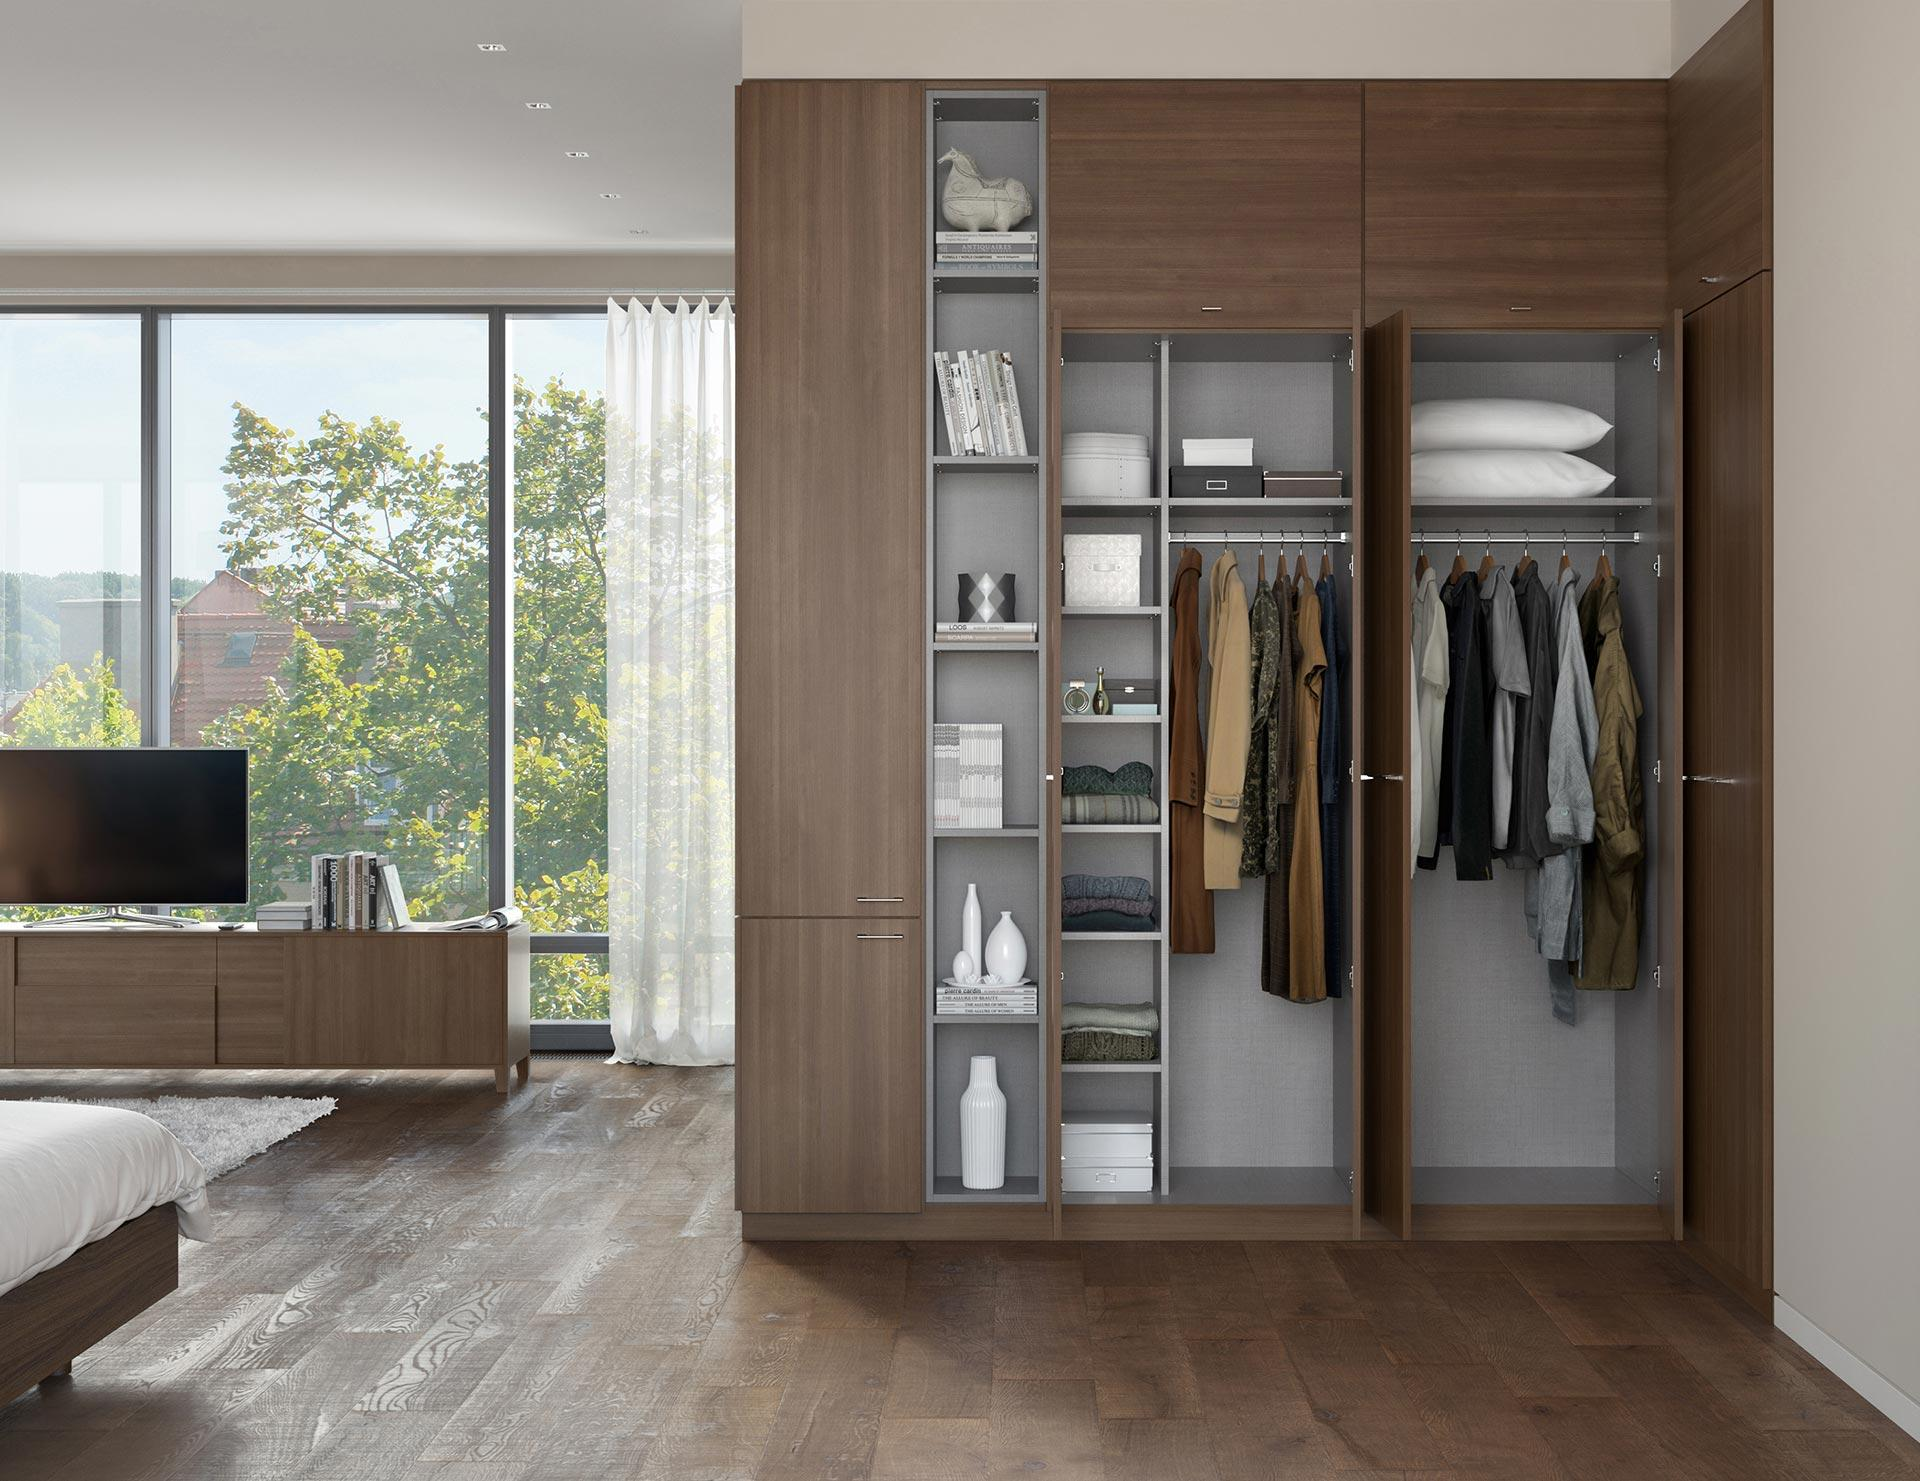 Wardrobe Closets | Custom Wardrobe Closet Systems for Your ...